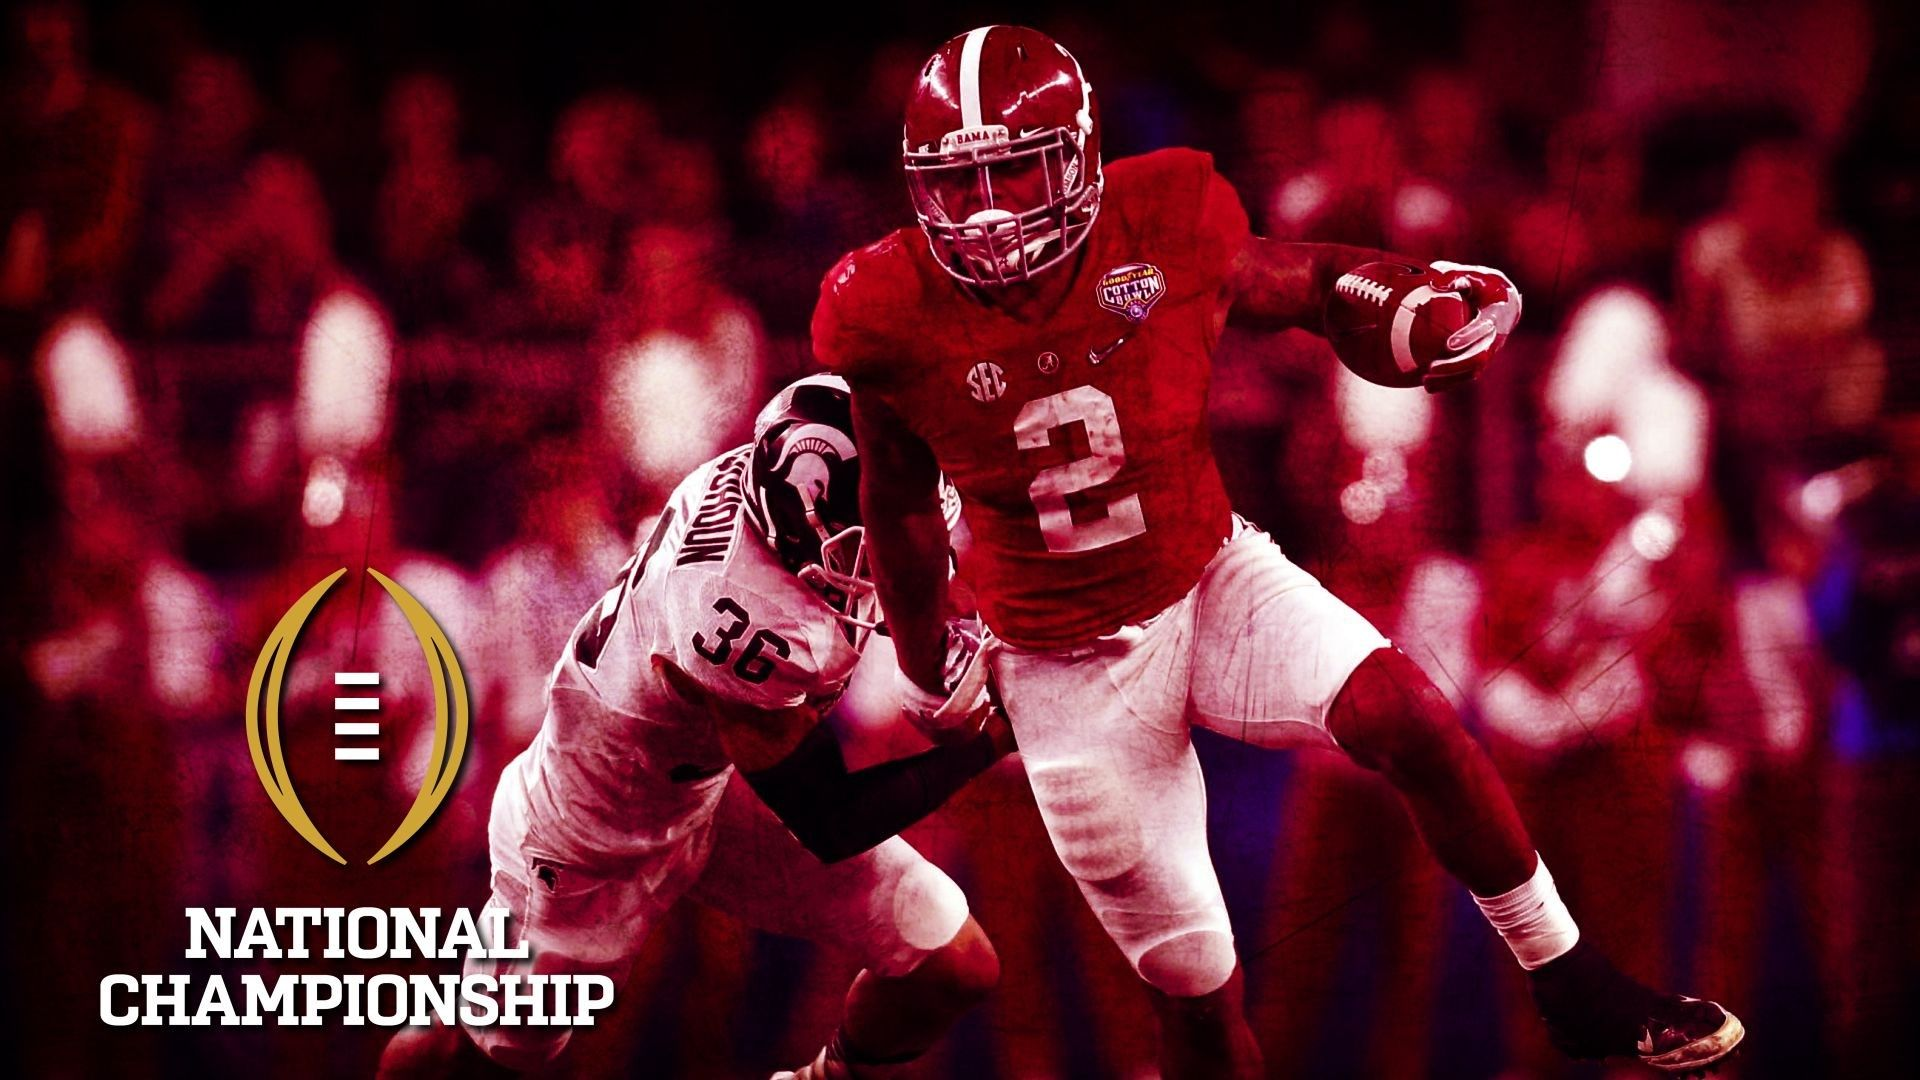 alabama national champions wallpaper » Wallppapers Gallery